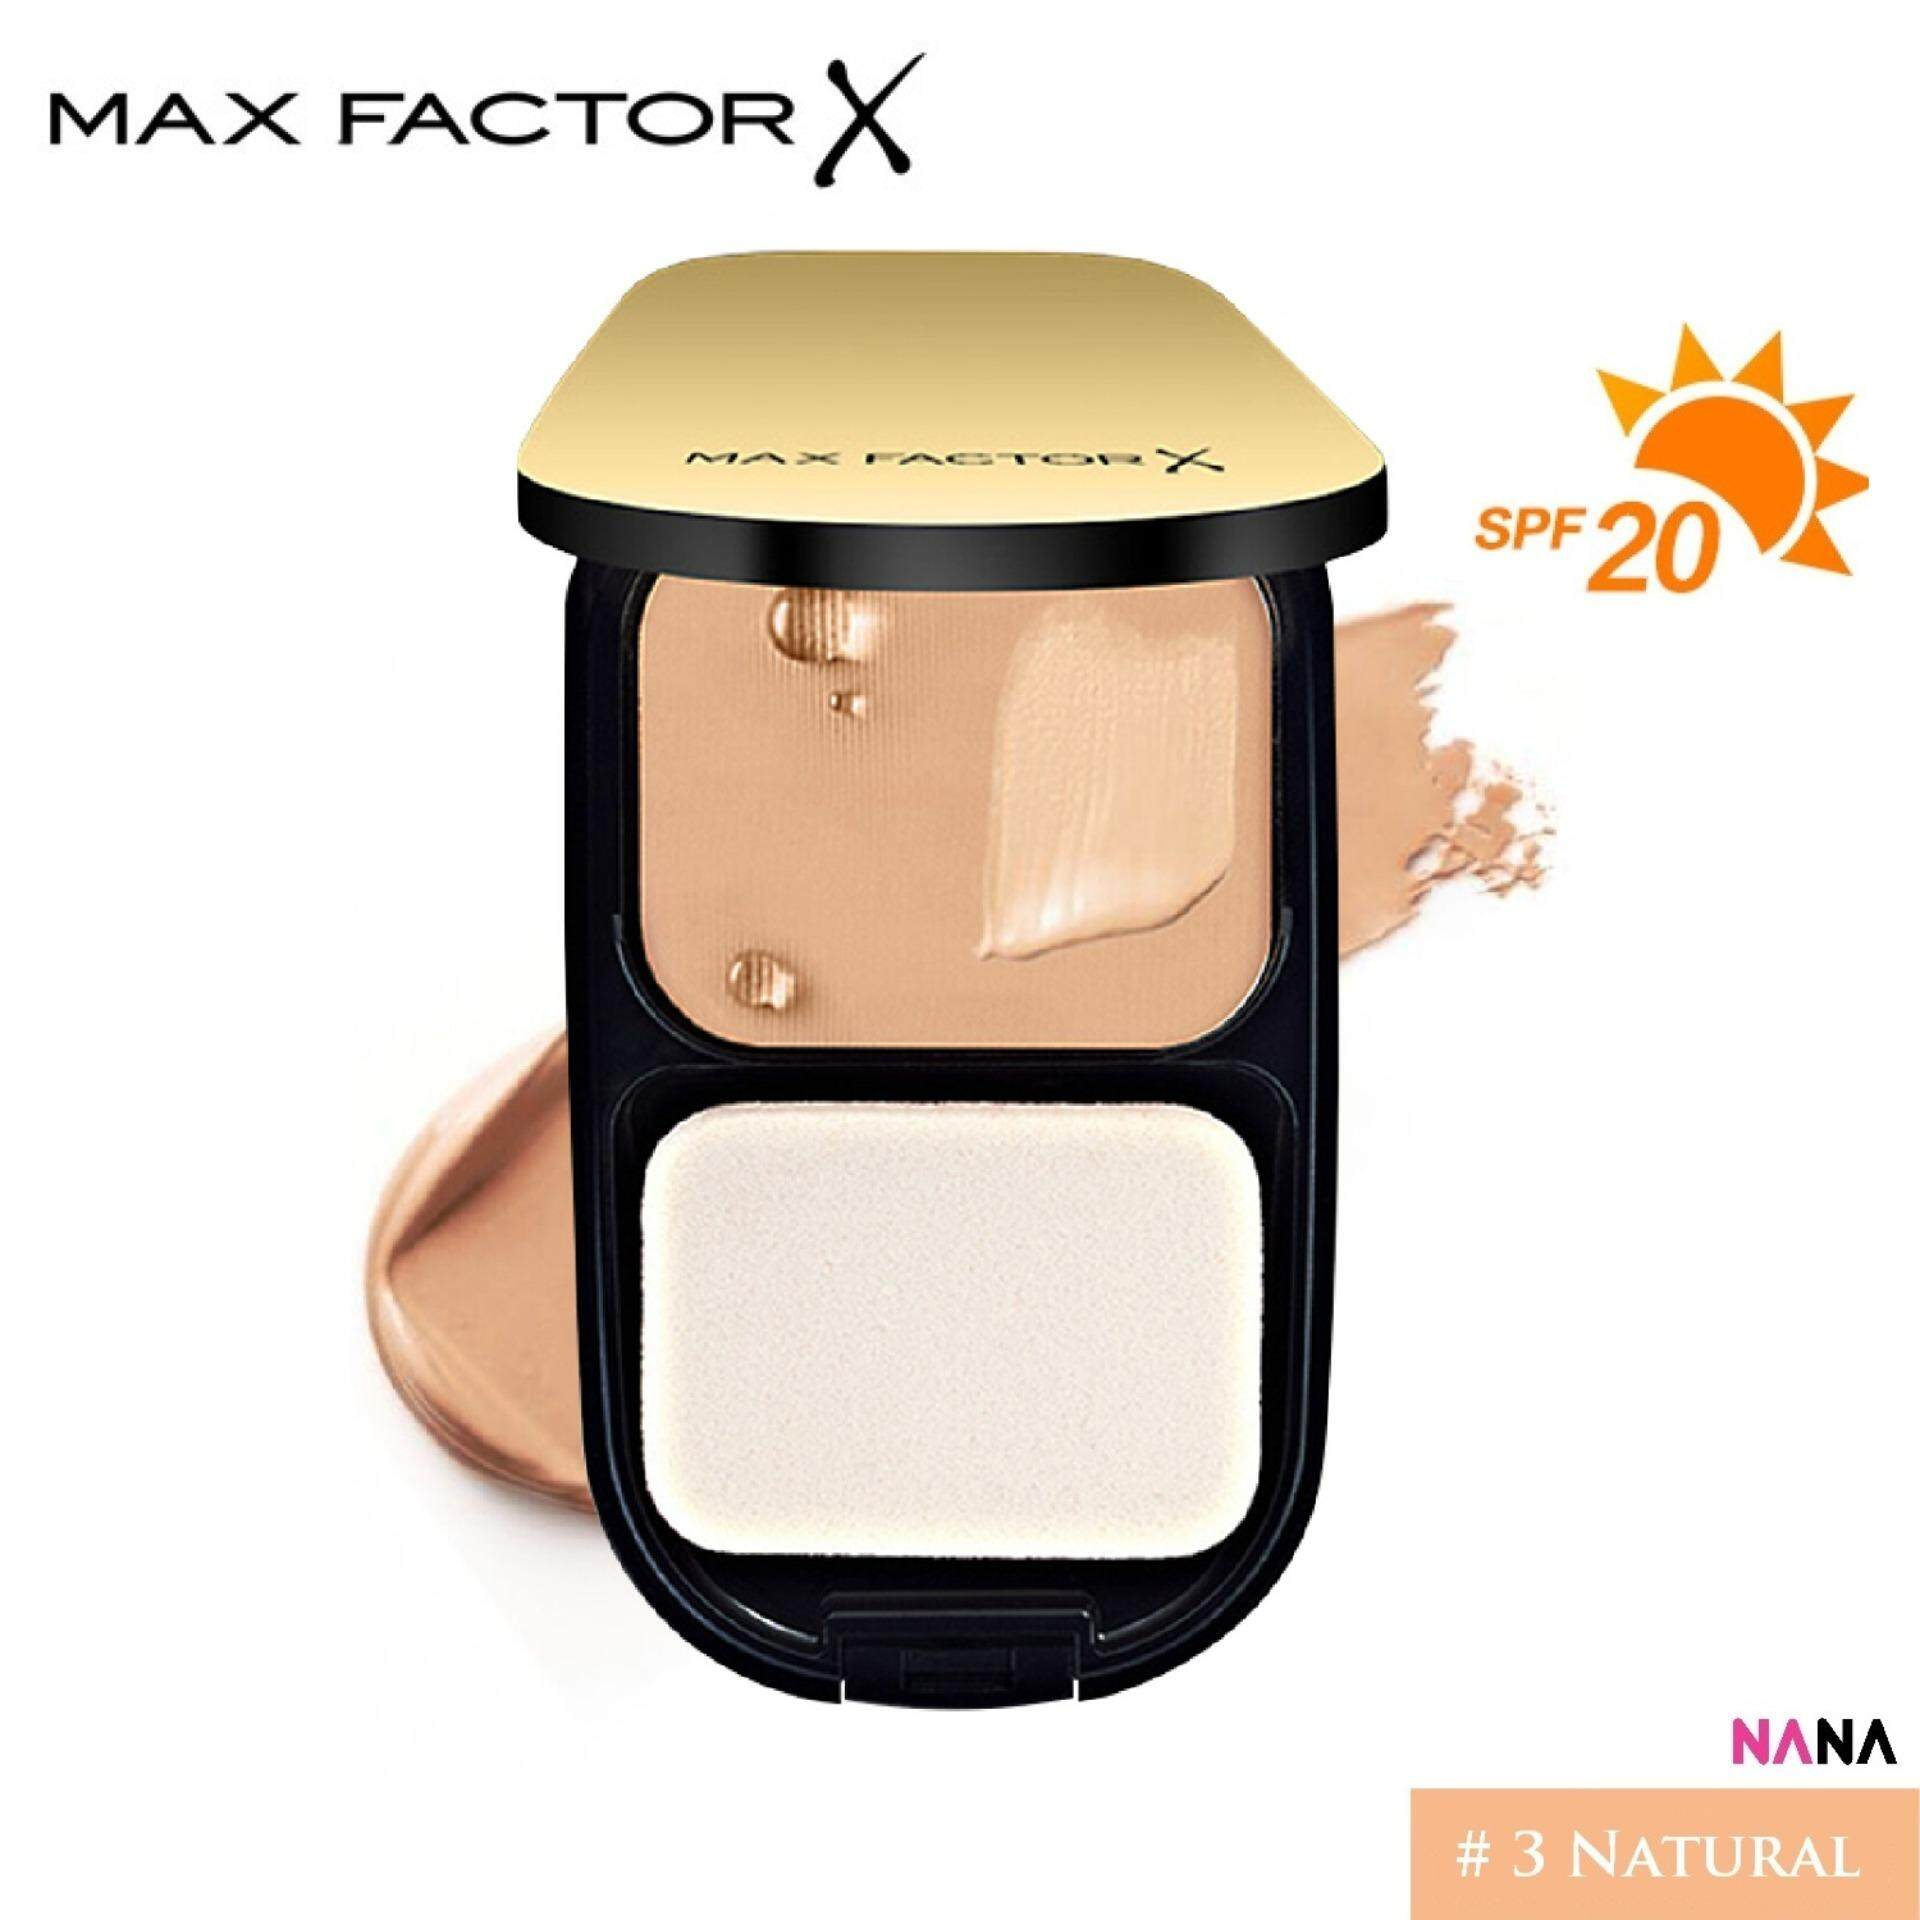 Features Ushas Smooth Foundation Stick 03 Dan Harga Terbaru Info Silkygirl Moisture Lip Color Simply Pink Max Factor Facefinity Compact Natural 10g